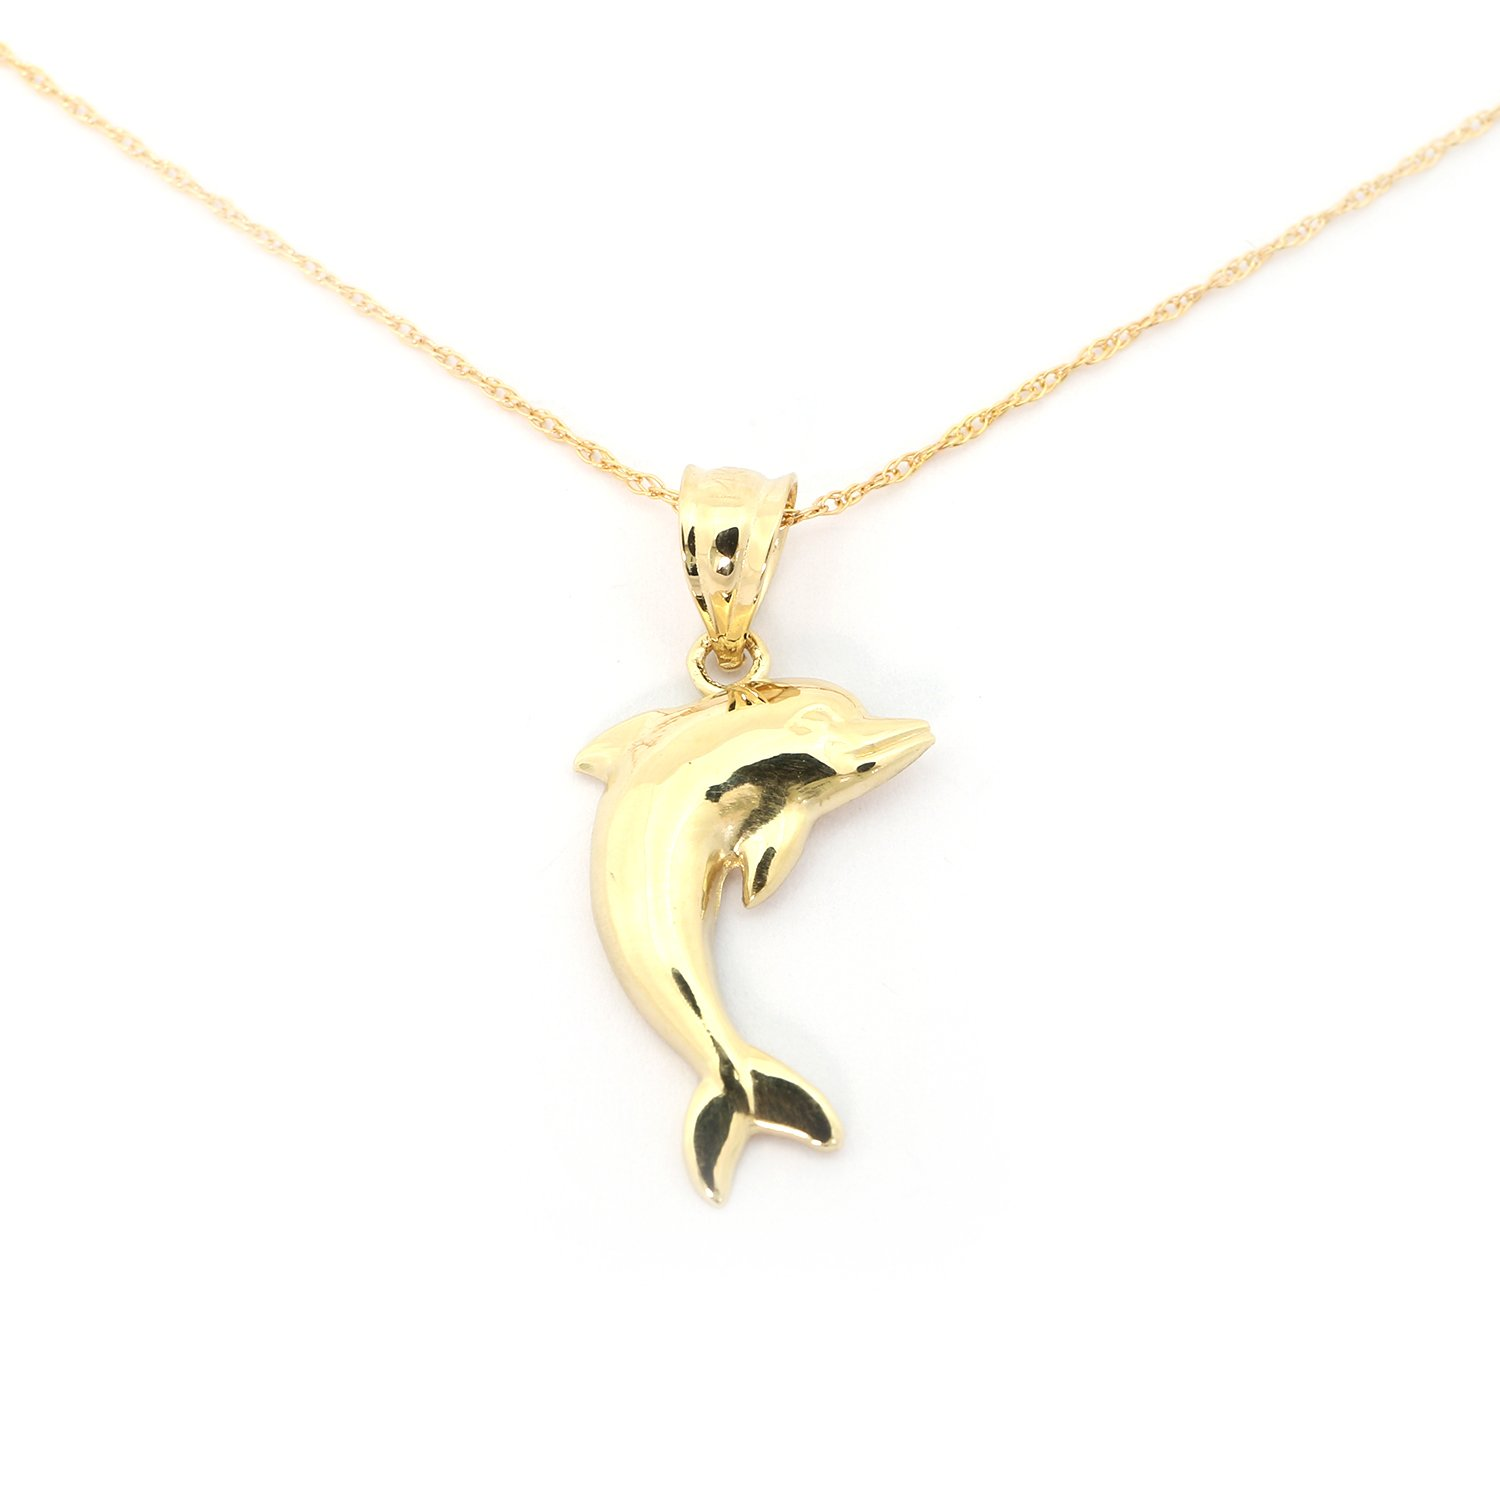 14k Yellow Gold Dolphin Pendant Necklace - 18''